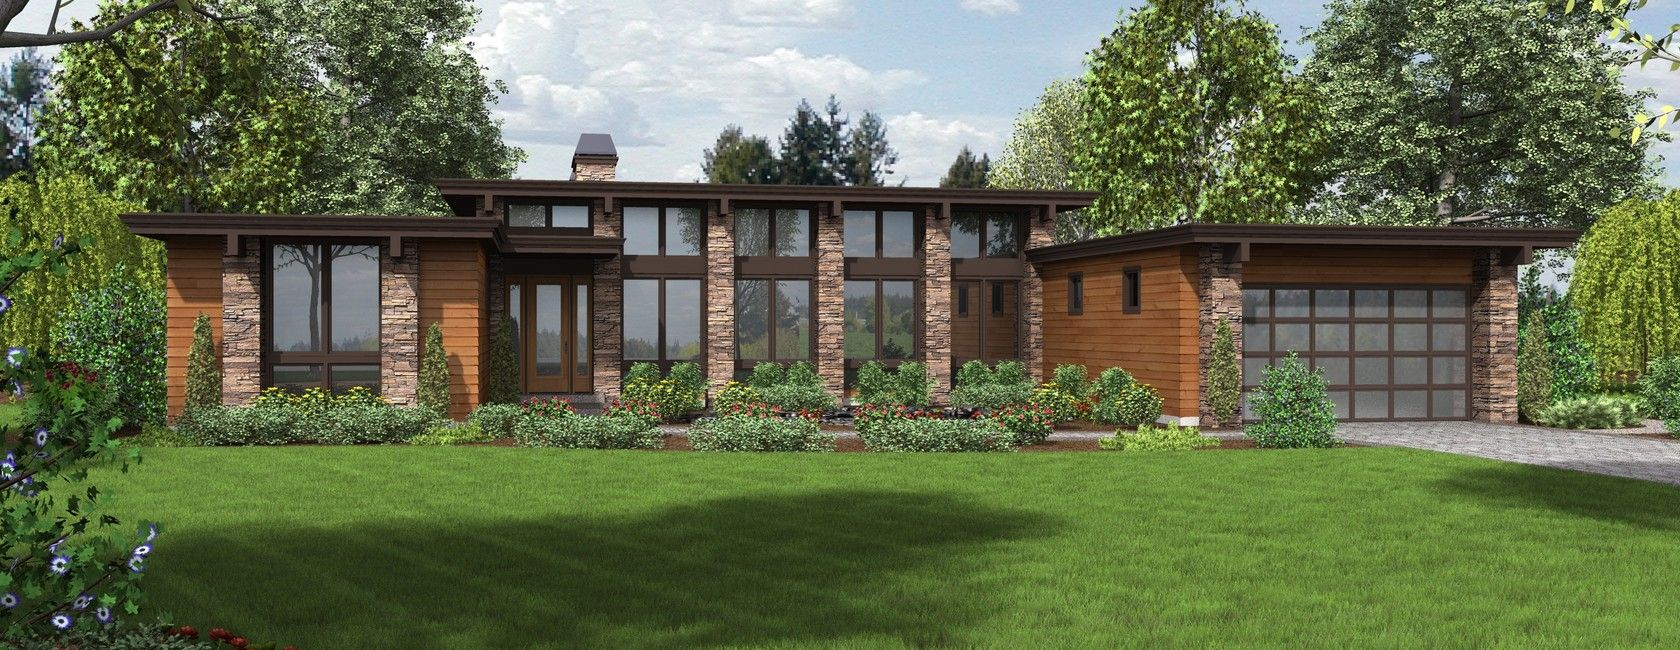 H Shaped House Plan Modern Style House Plans Ranch House Plans